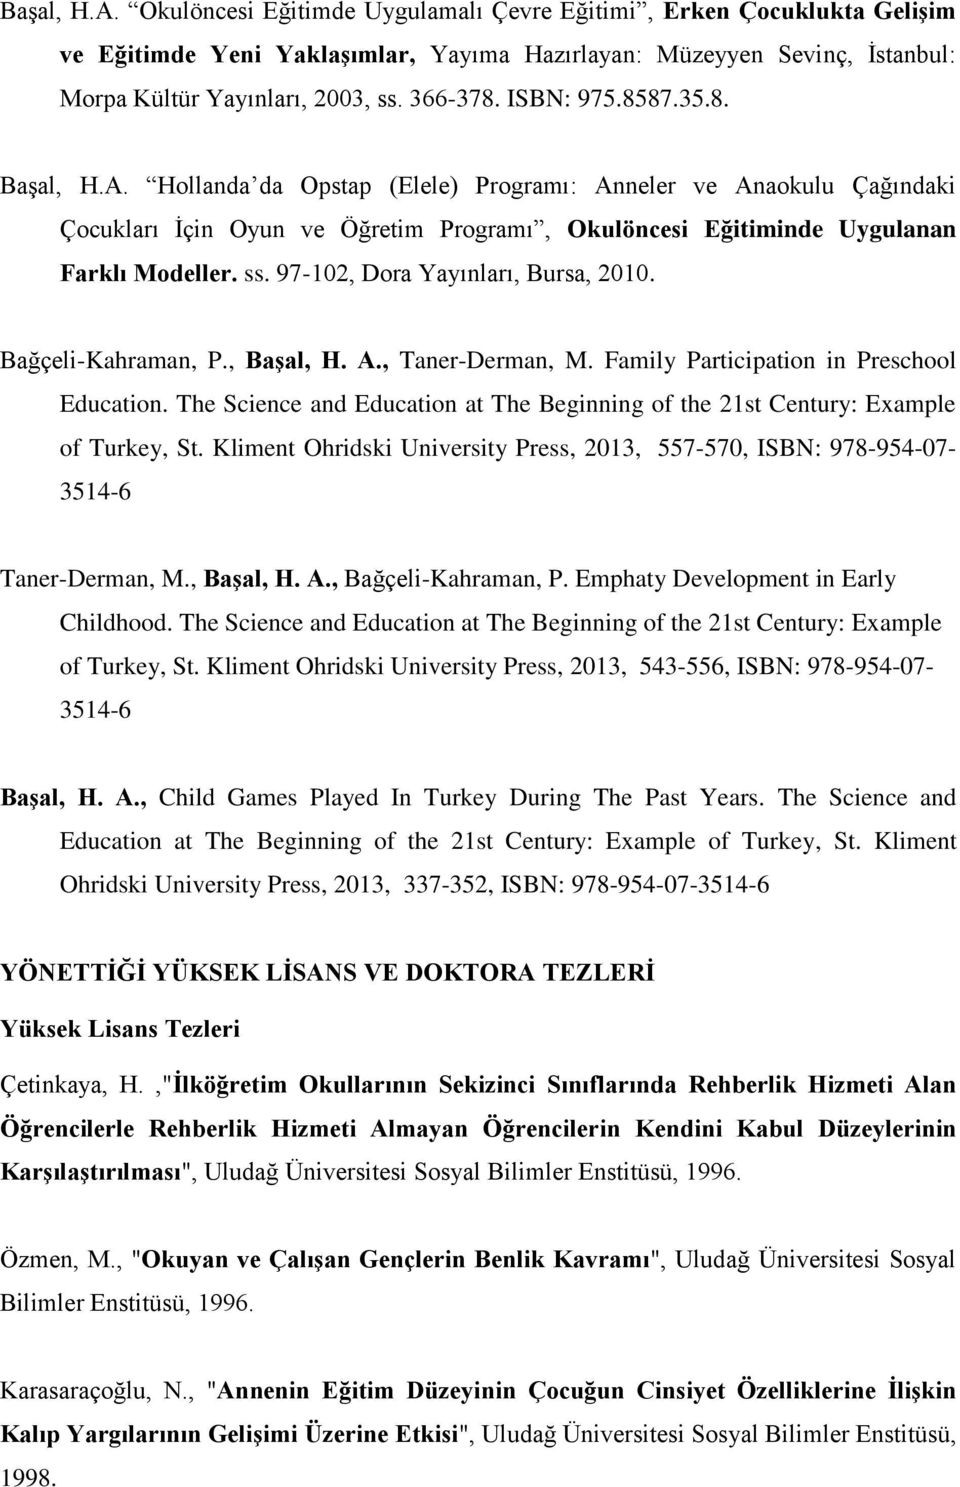 ss. 97-102, Dora Yayınları, Bursa, 2010. Bağçeli-Kahraman, P., Başal, H. A., Taner-Derman, M. Family Participation in Preschool Education.